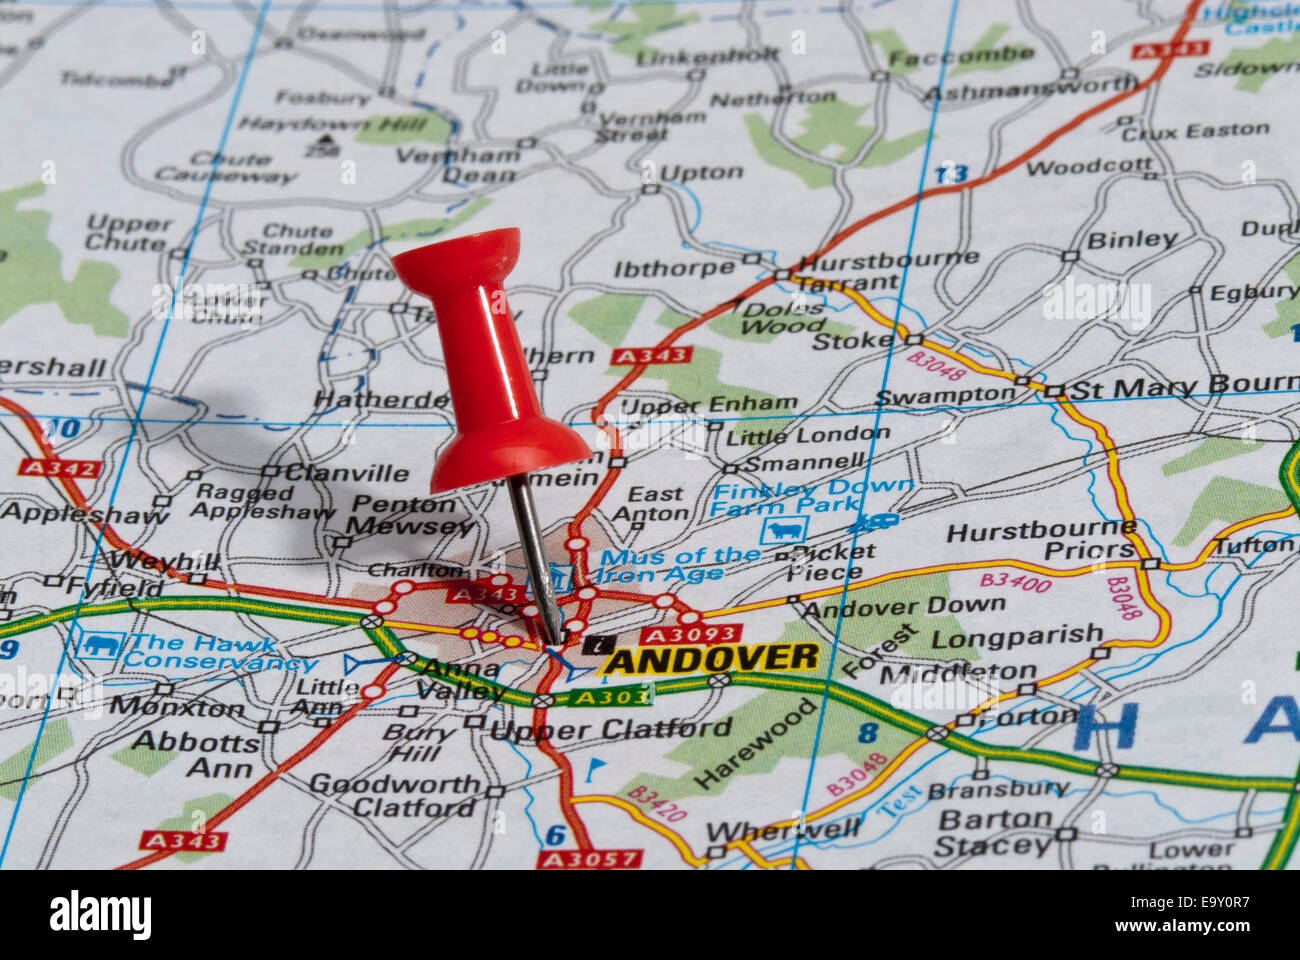 red map pin in road map pointing to city of Andover - Stock Image